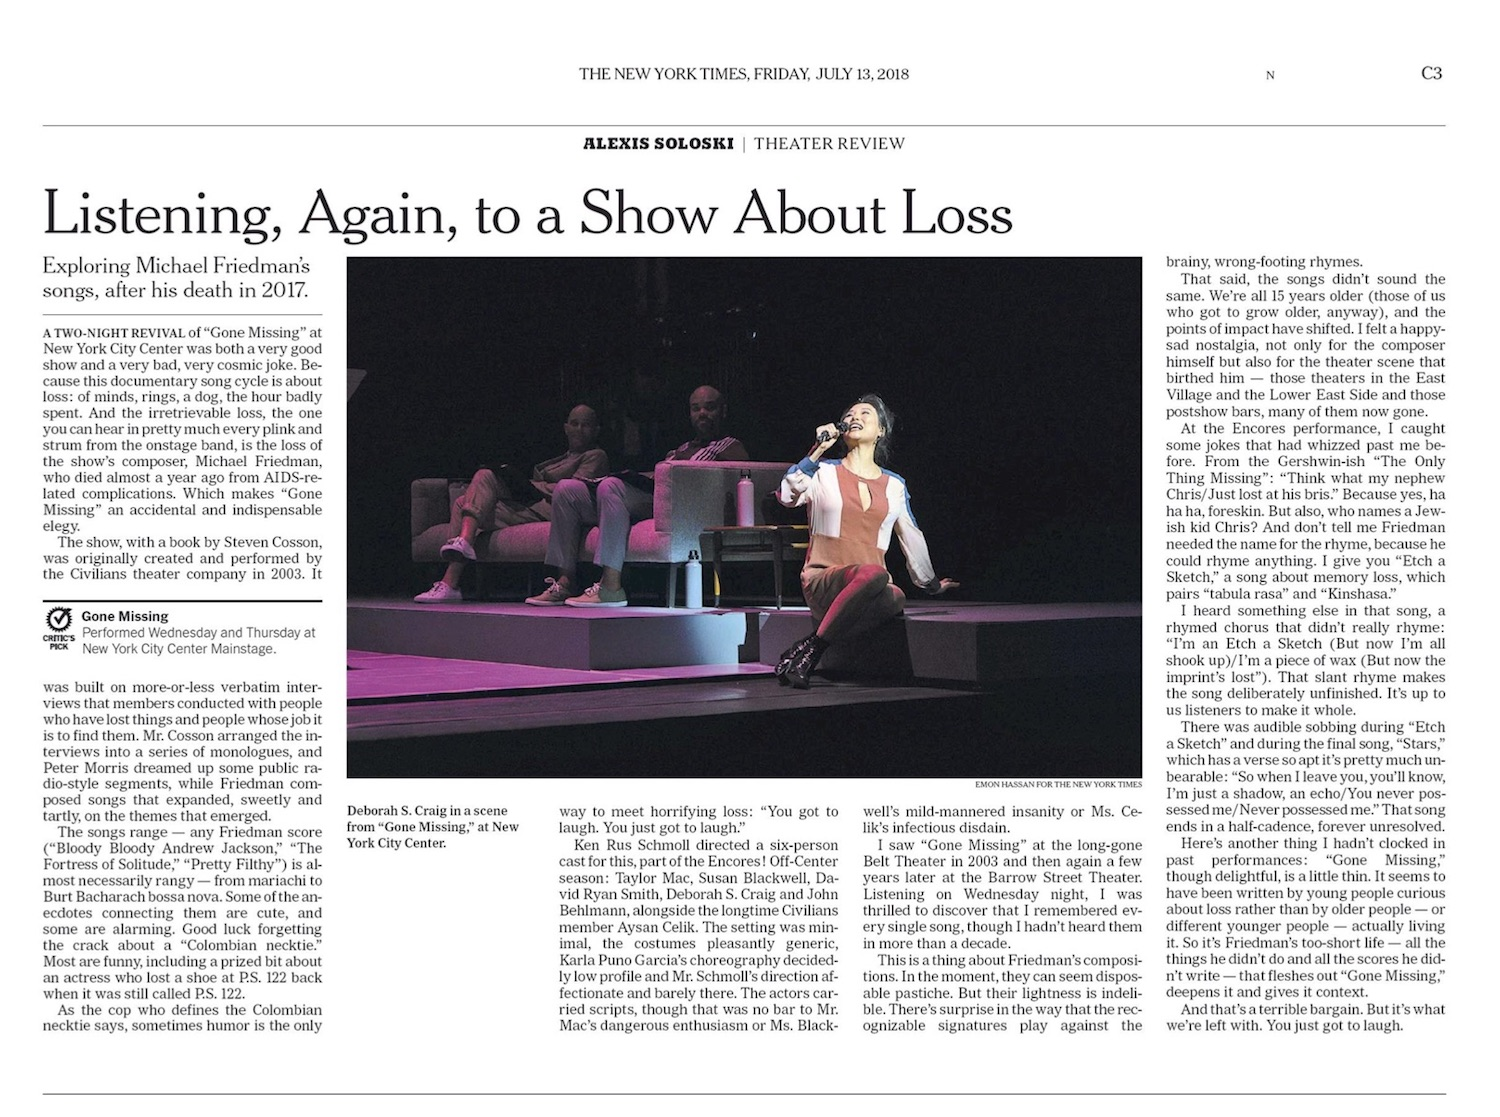 https://www.nytimes.com/2018/07/12/theater/gone-missing-review-michael-friedman-civlians.html